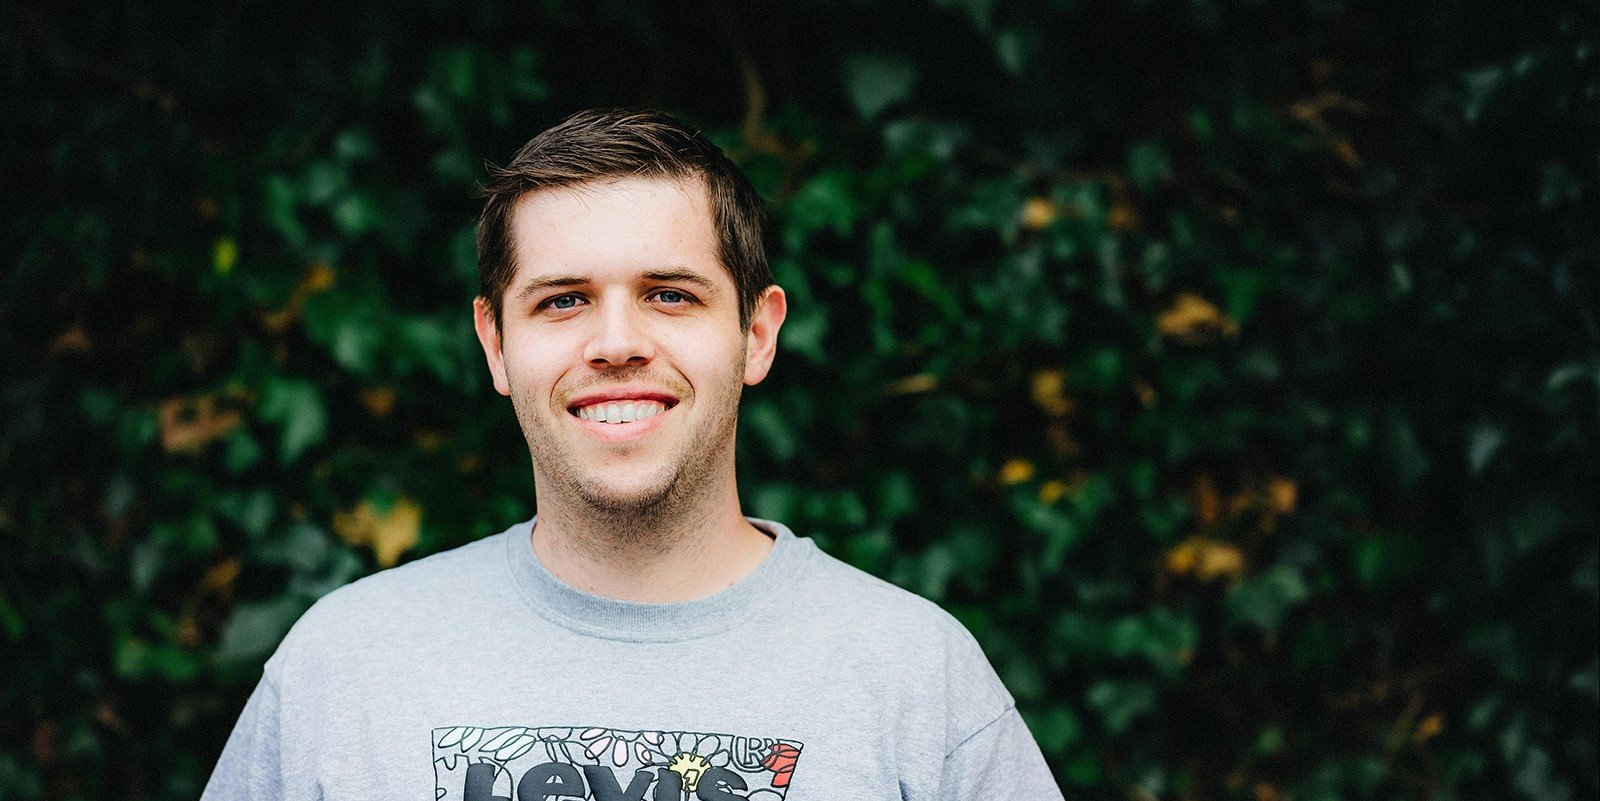 Rory Tarplee: Building my confidence and technical skills – how ClickThrough helped me become a leader